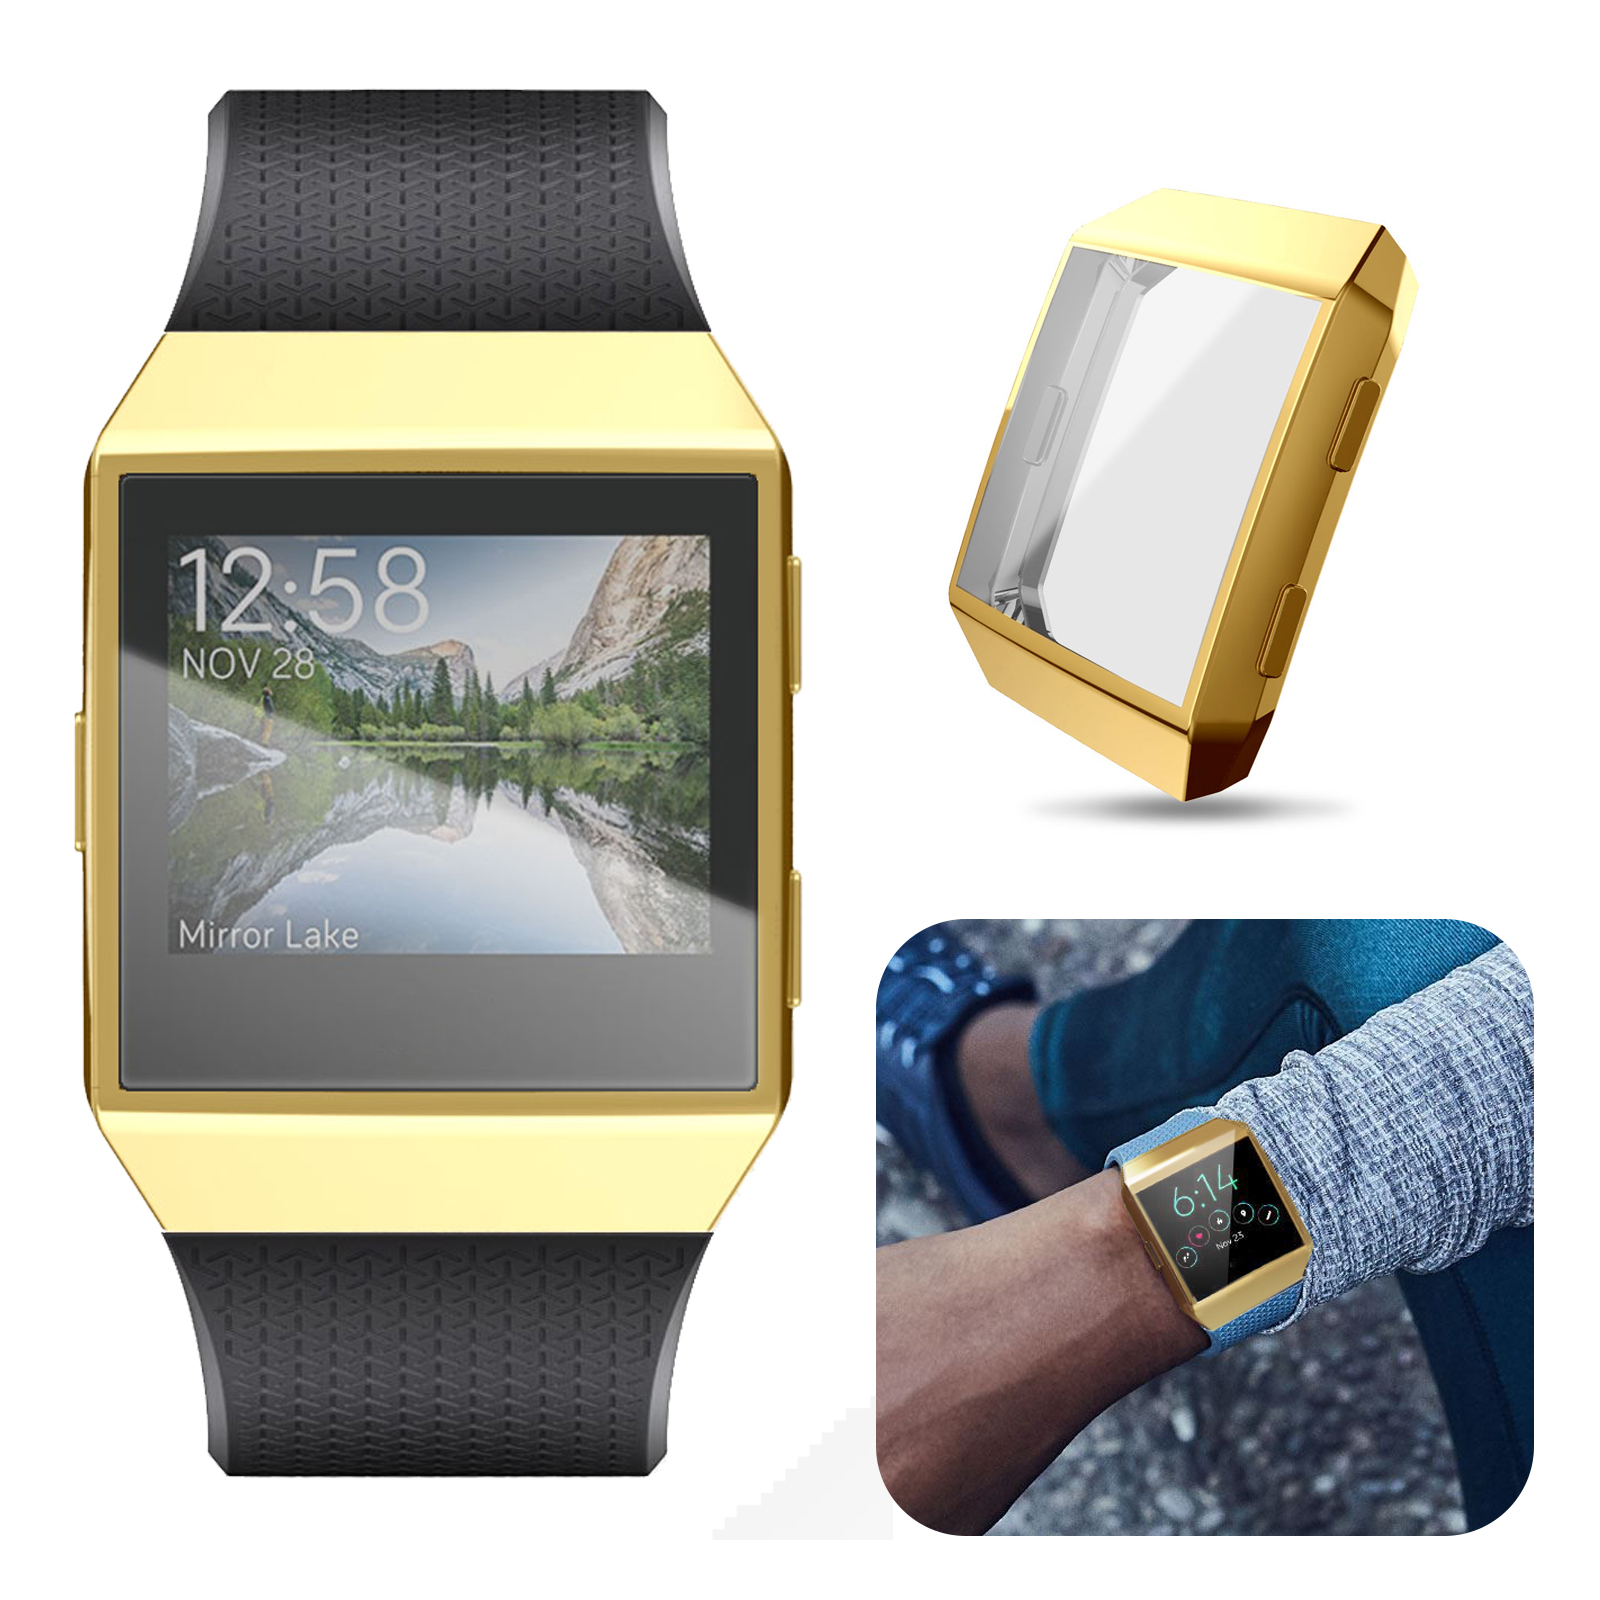 EEEKit Screen Protector Case, Flexible Soft TPU Scratch-resistant FullBody Protective Case for Fitbit Ionic Smart Watch